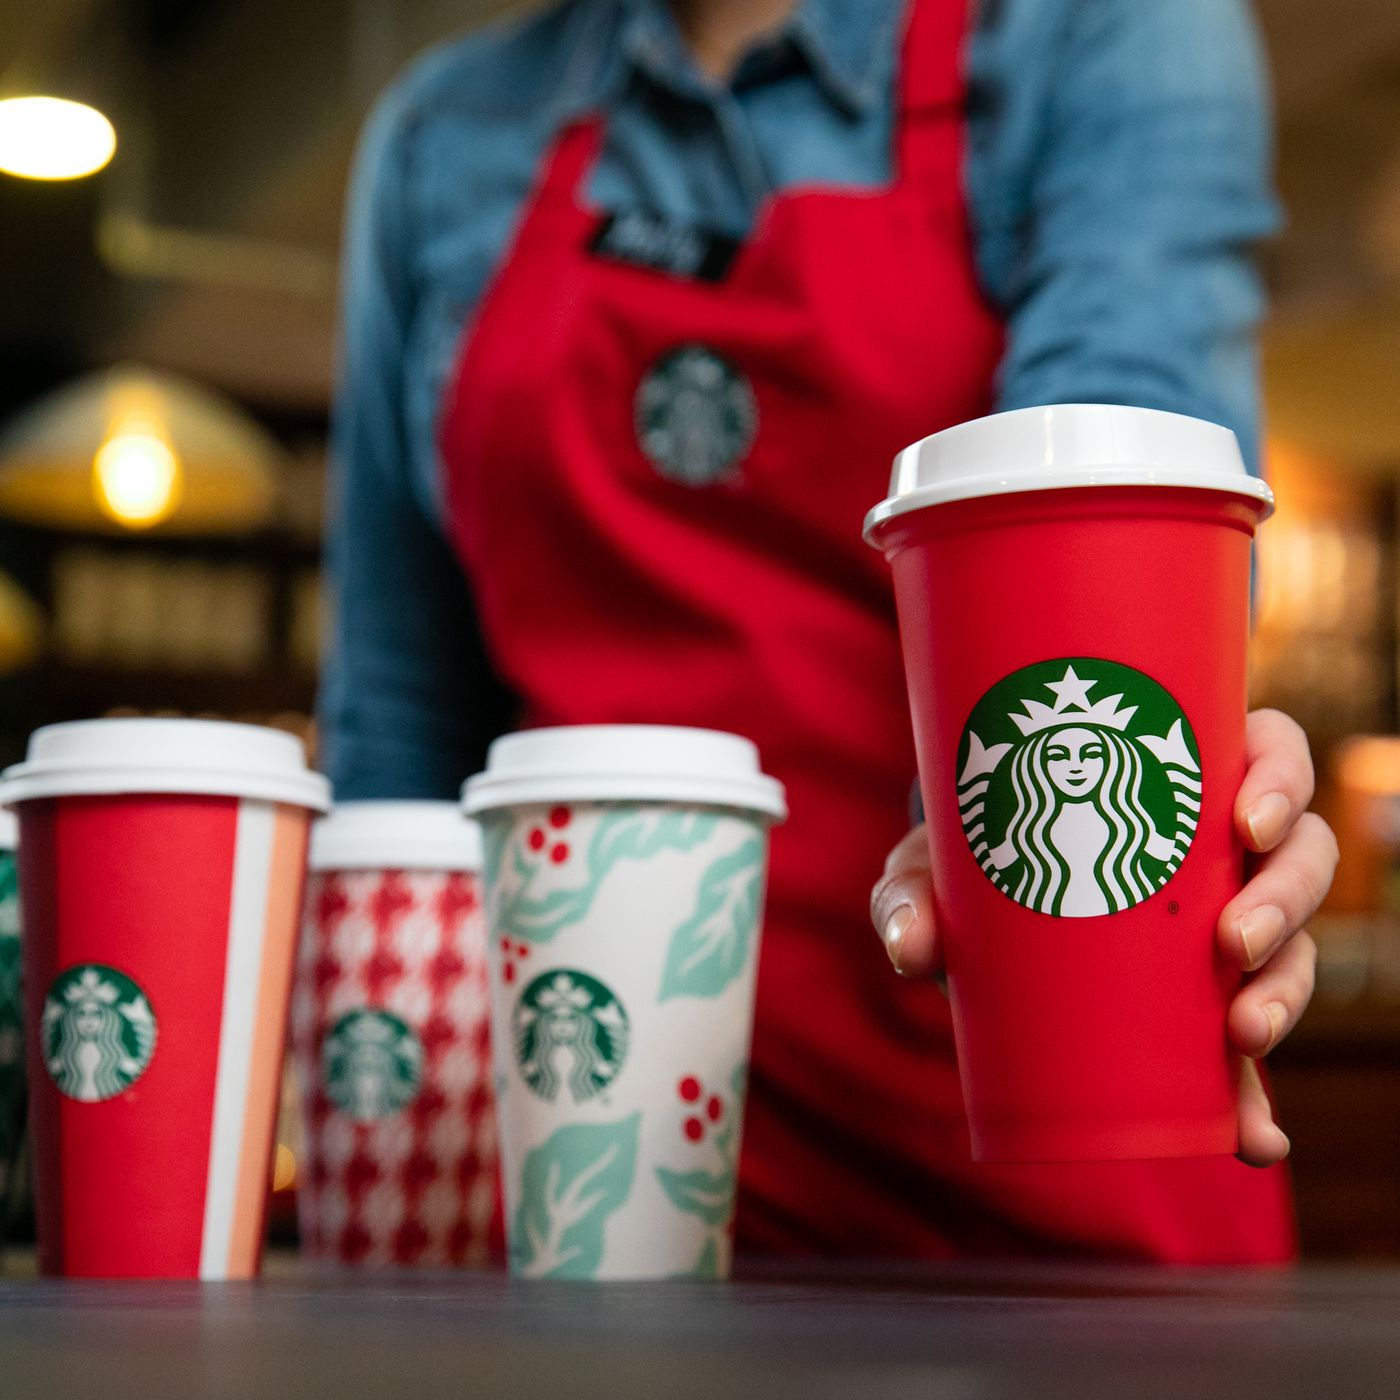 22c45964413 The controversial history of the annual Starbucks holiday cup - Vox